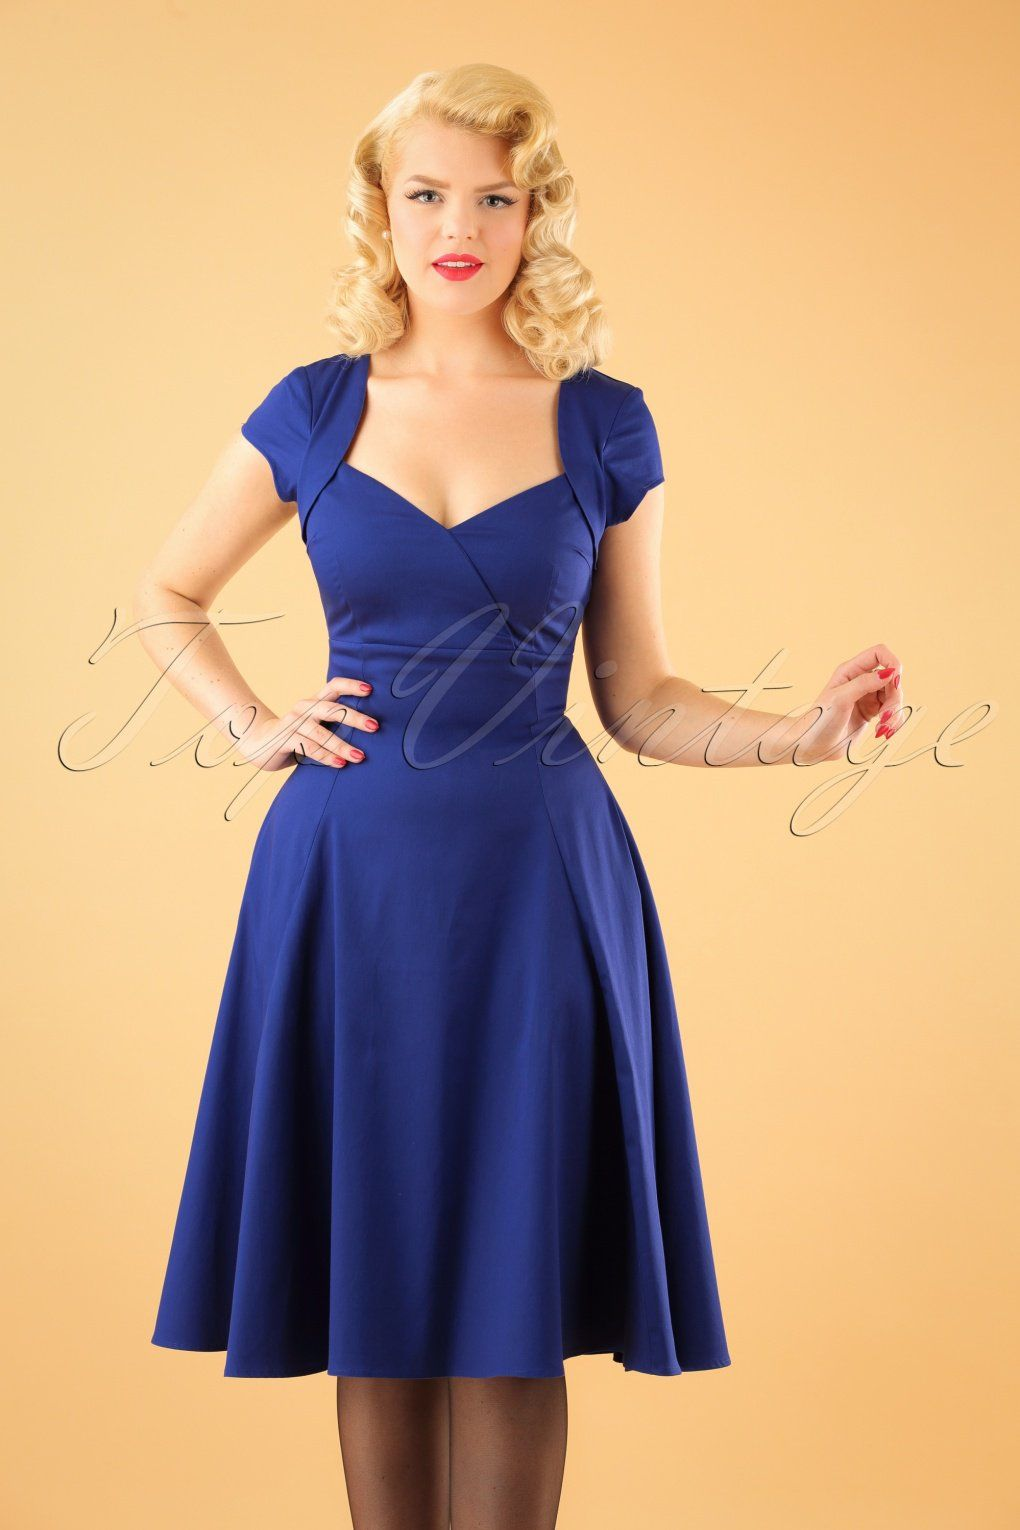 c311170ad6 Dress it up or keep it classy... you're ready for any occasion when wearing  this 50s Regina Doll Swing Dress in Royal Blue! Elegant, comfortable and  playful ...